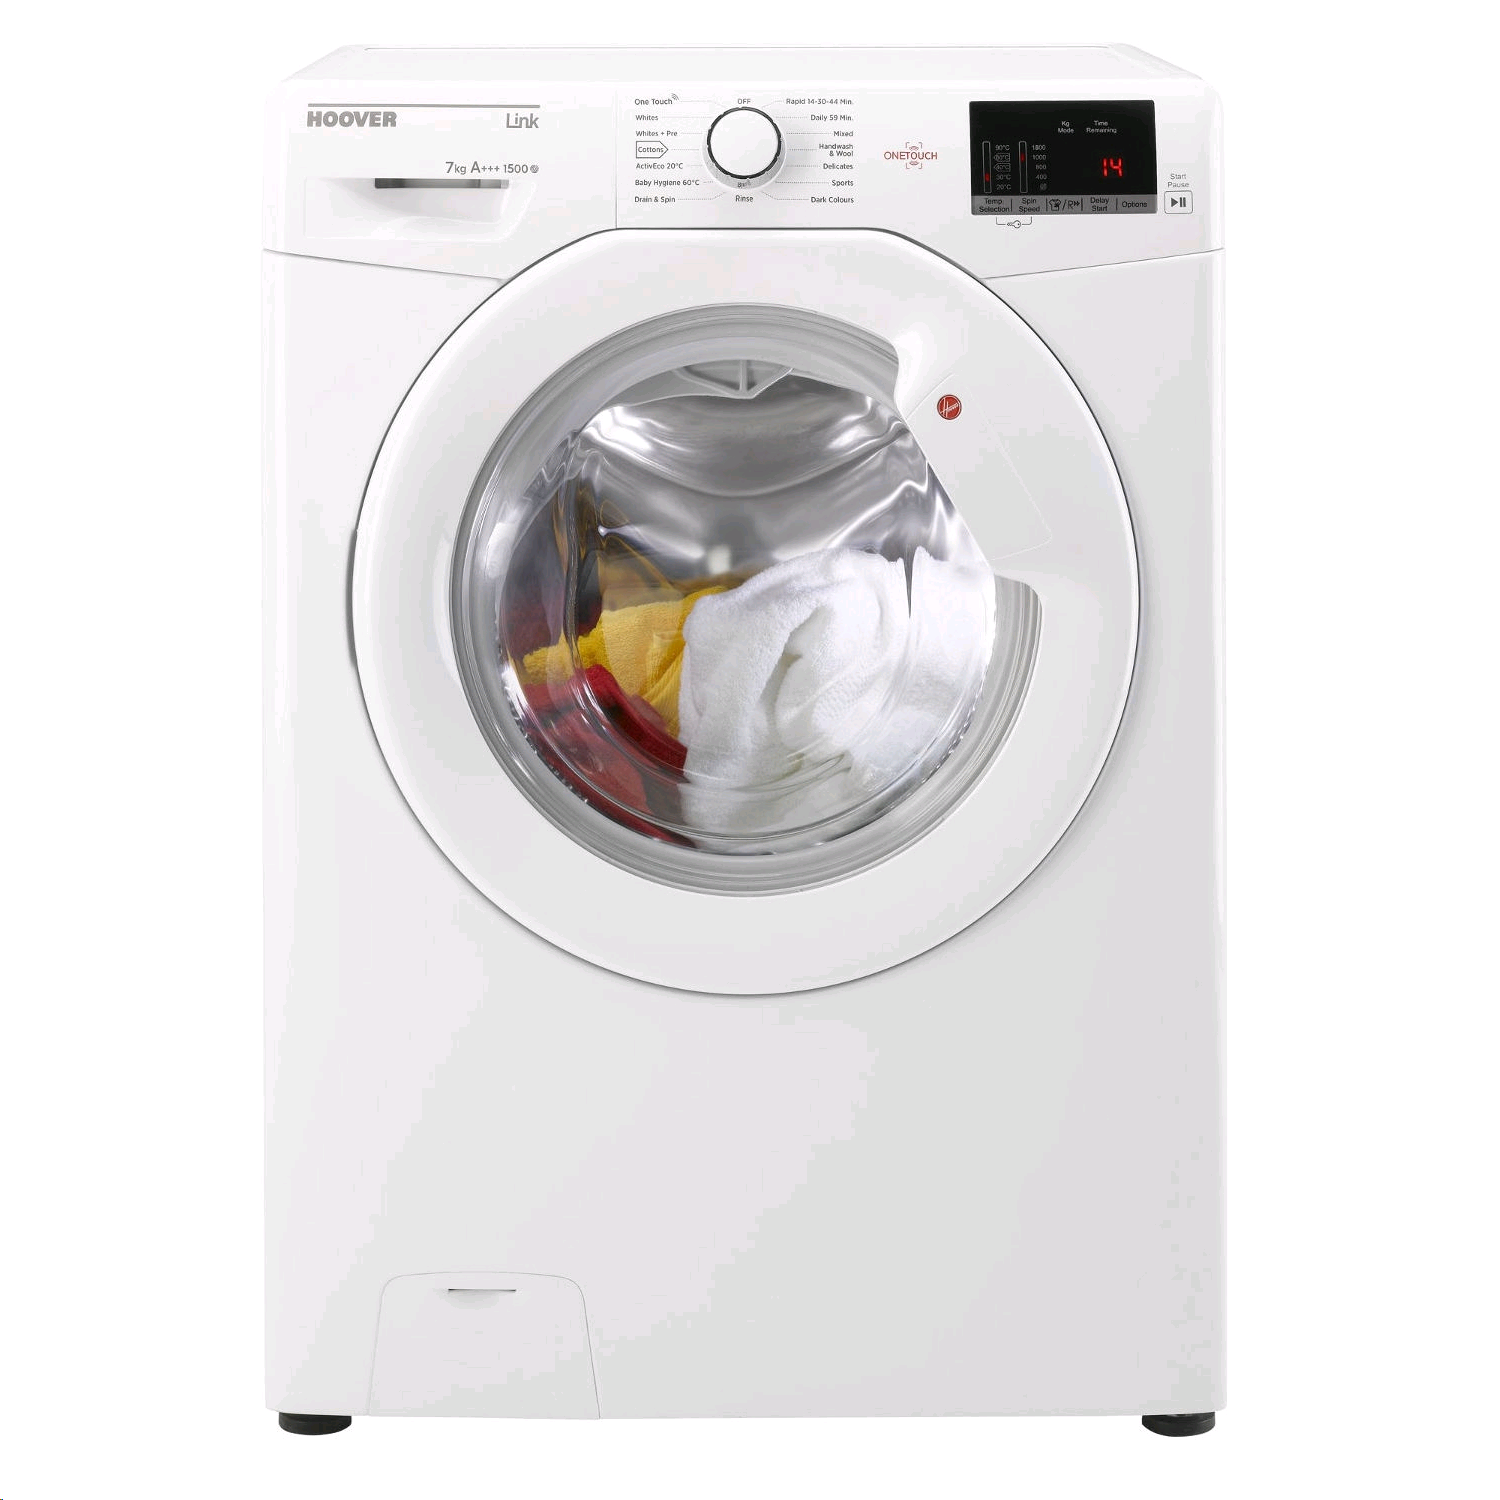 HOOVER 7KG 1500spin Washing Machine